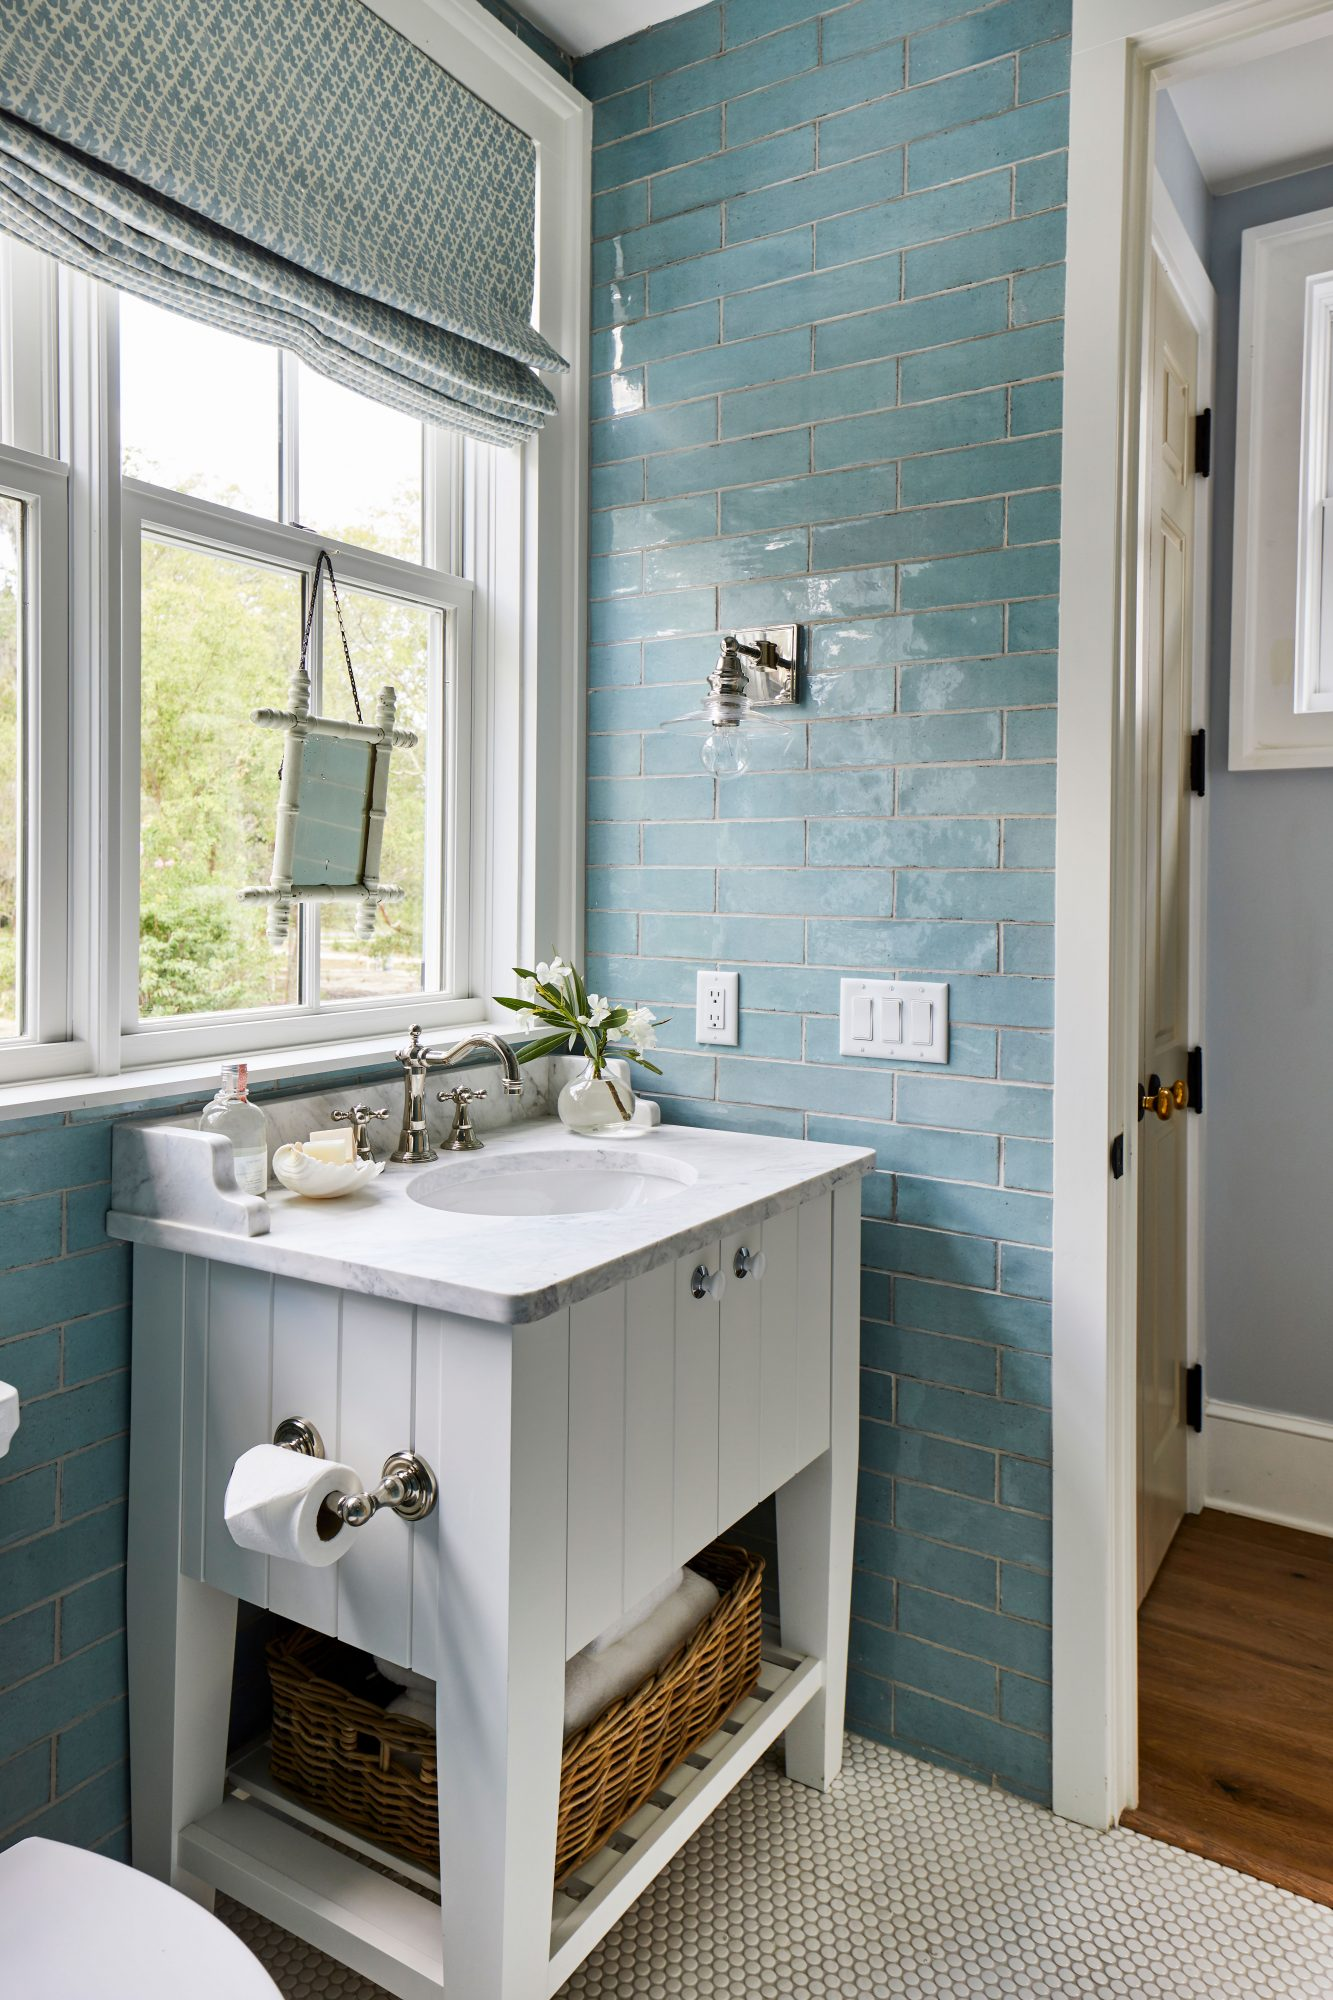 2019 Idea House Mother-in-Law Suite Bathroom